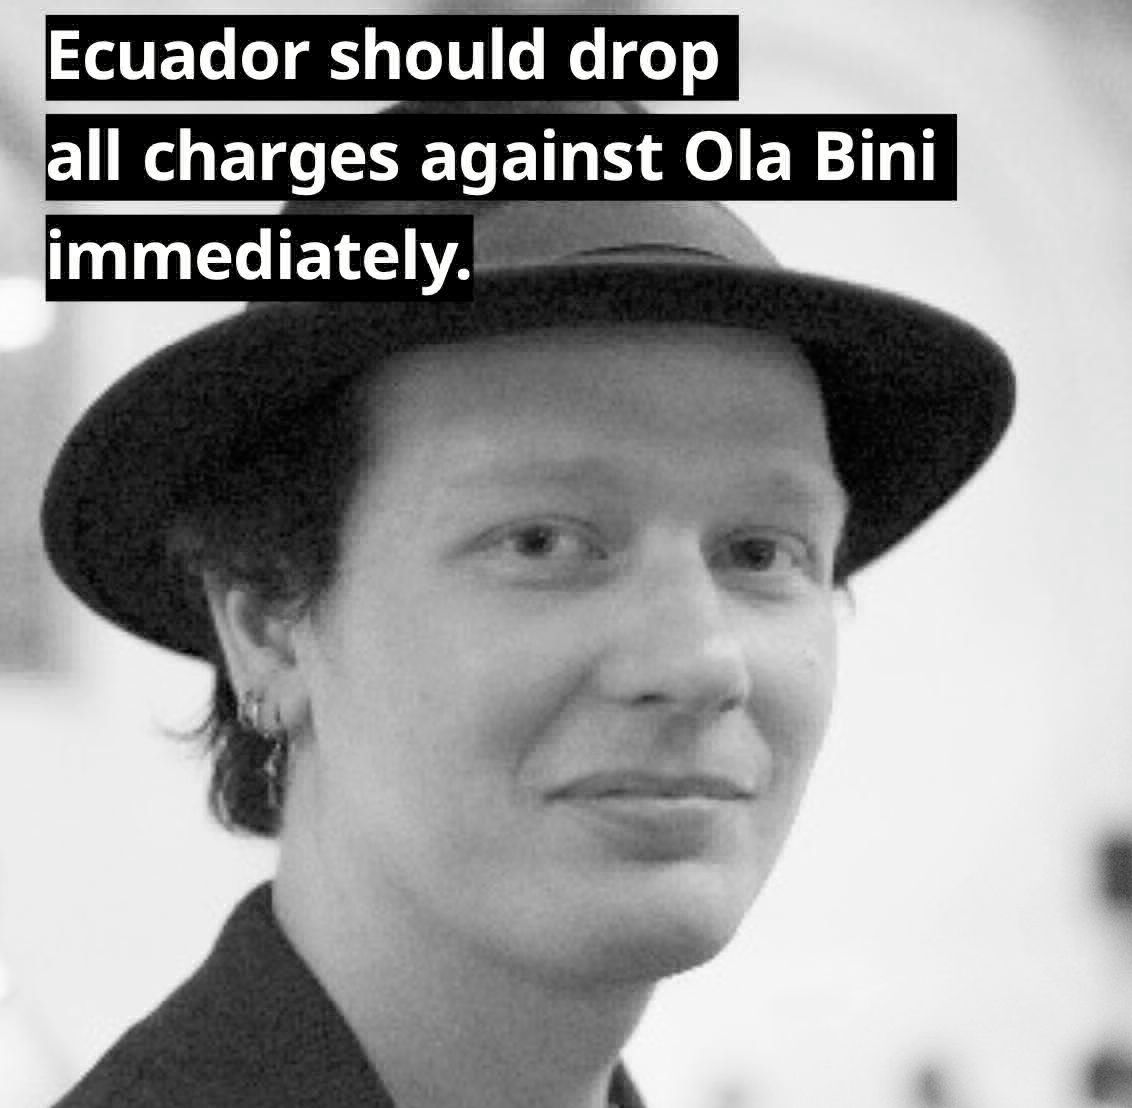 Digital rights defender Ola Bini has been imprisoned in Ecuador. #FreeOlaBini